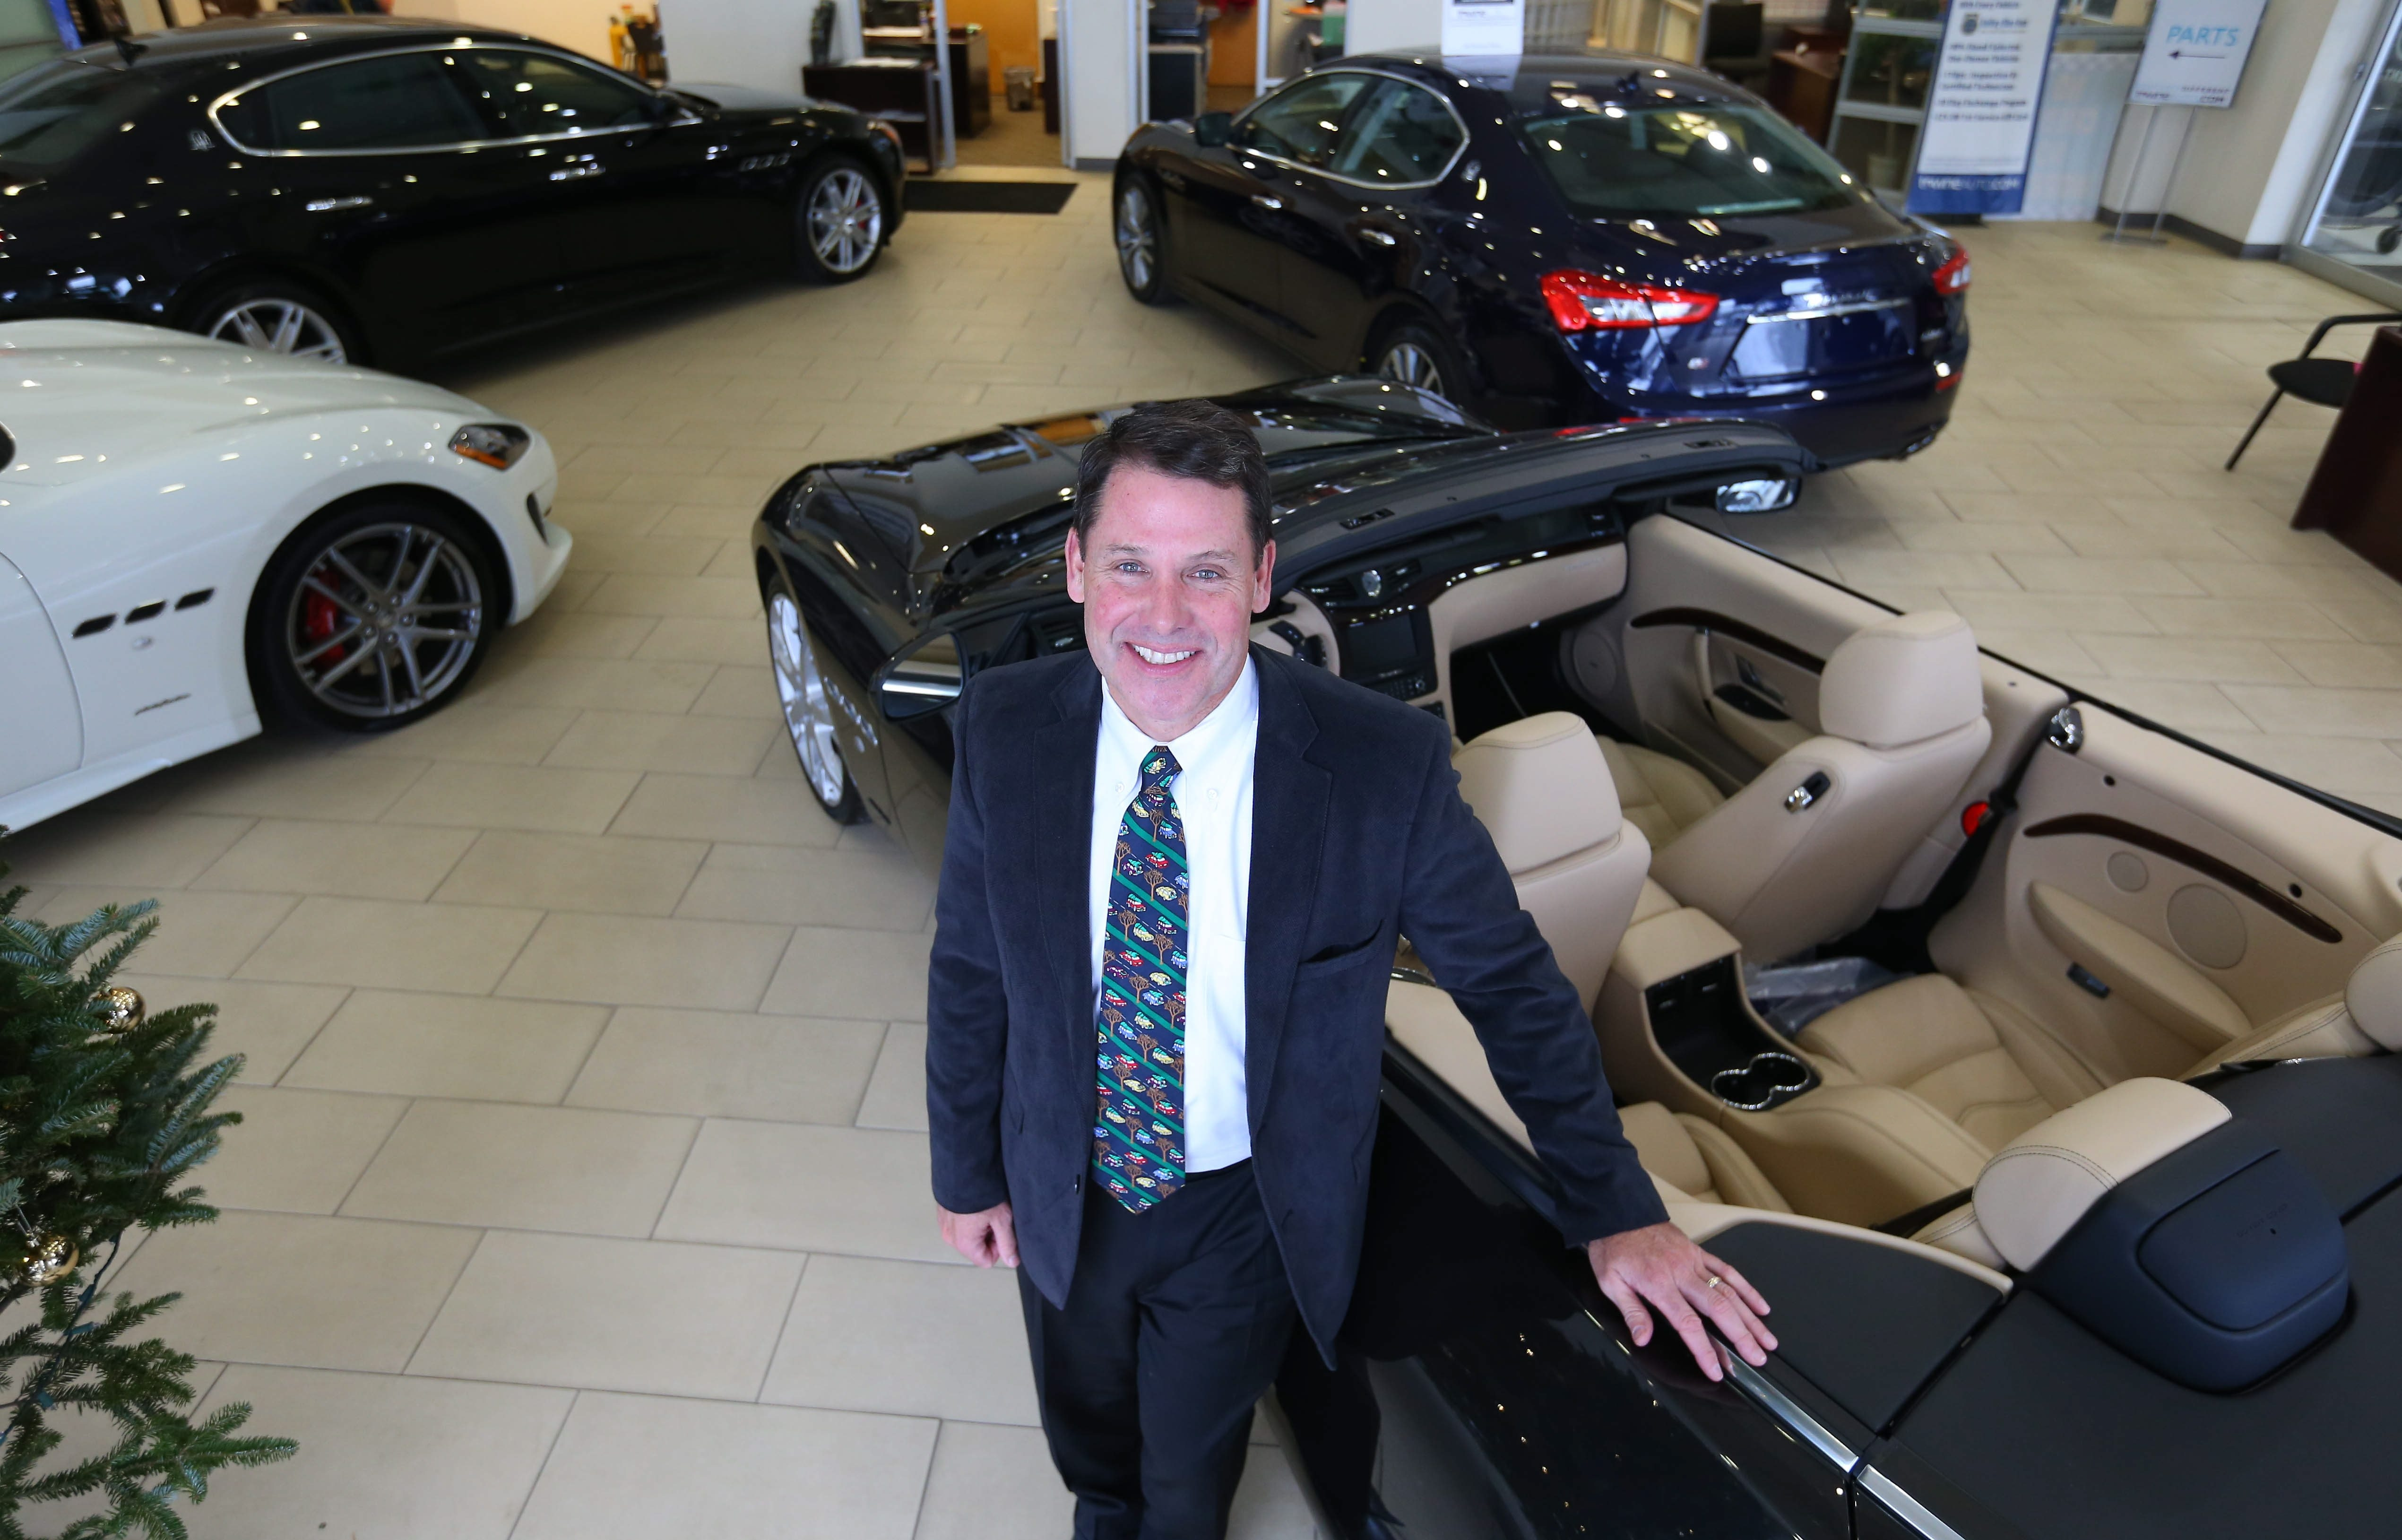 Towne Automotive Group President Frank Downing Jr. added Maserati to his lineup in Orchard Park.